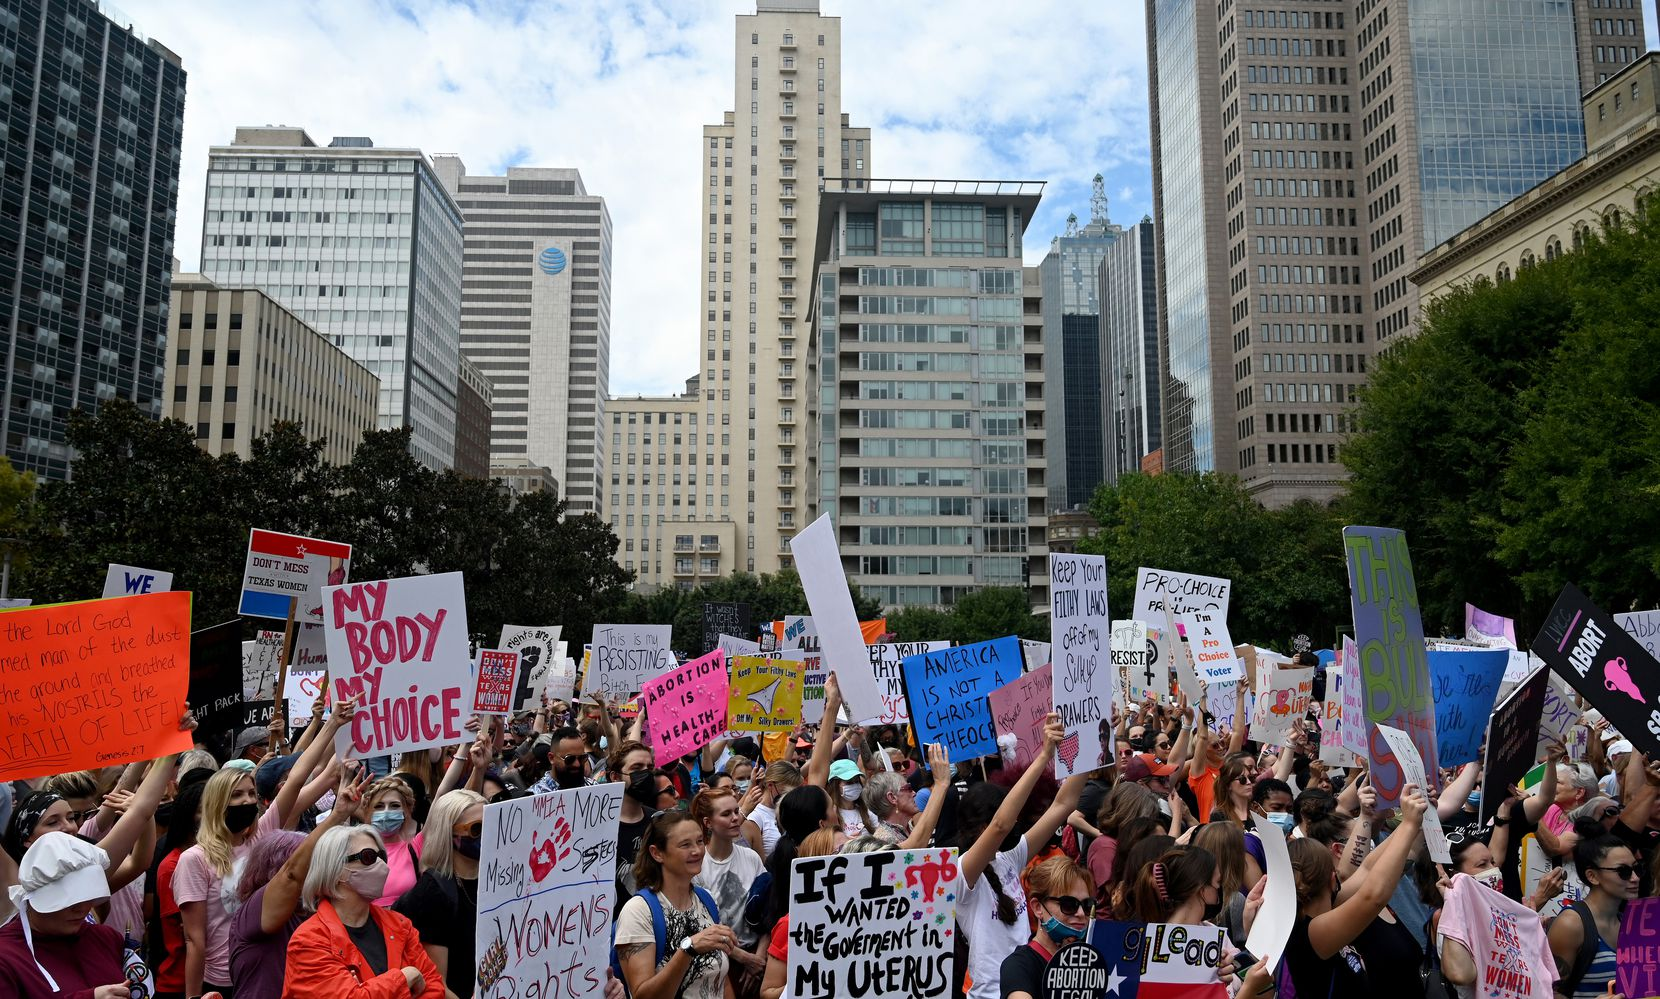 Saturday's marches in Dallas and across the nation came a day after the Justice Department argued before a federal judge in Austin that Texas' near-total ban on abortions is unconstitutional. The judge hasn't said when he will issue a decision.